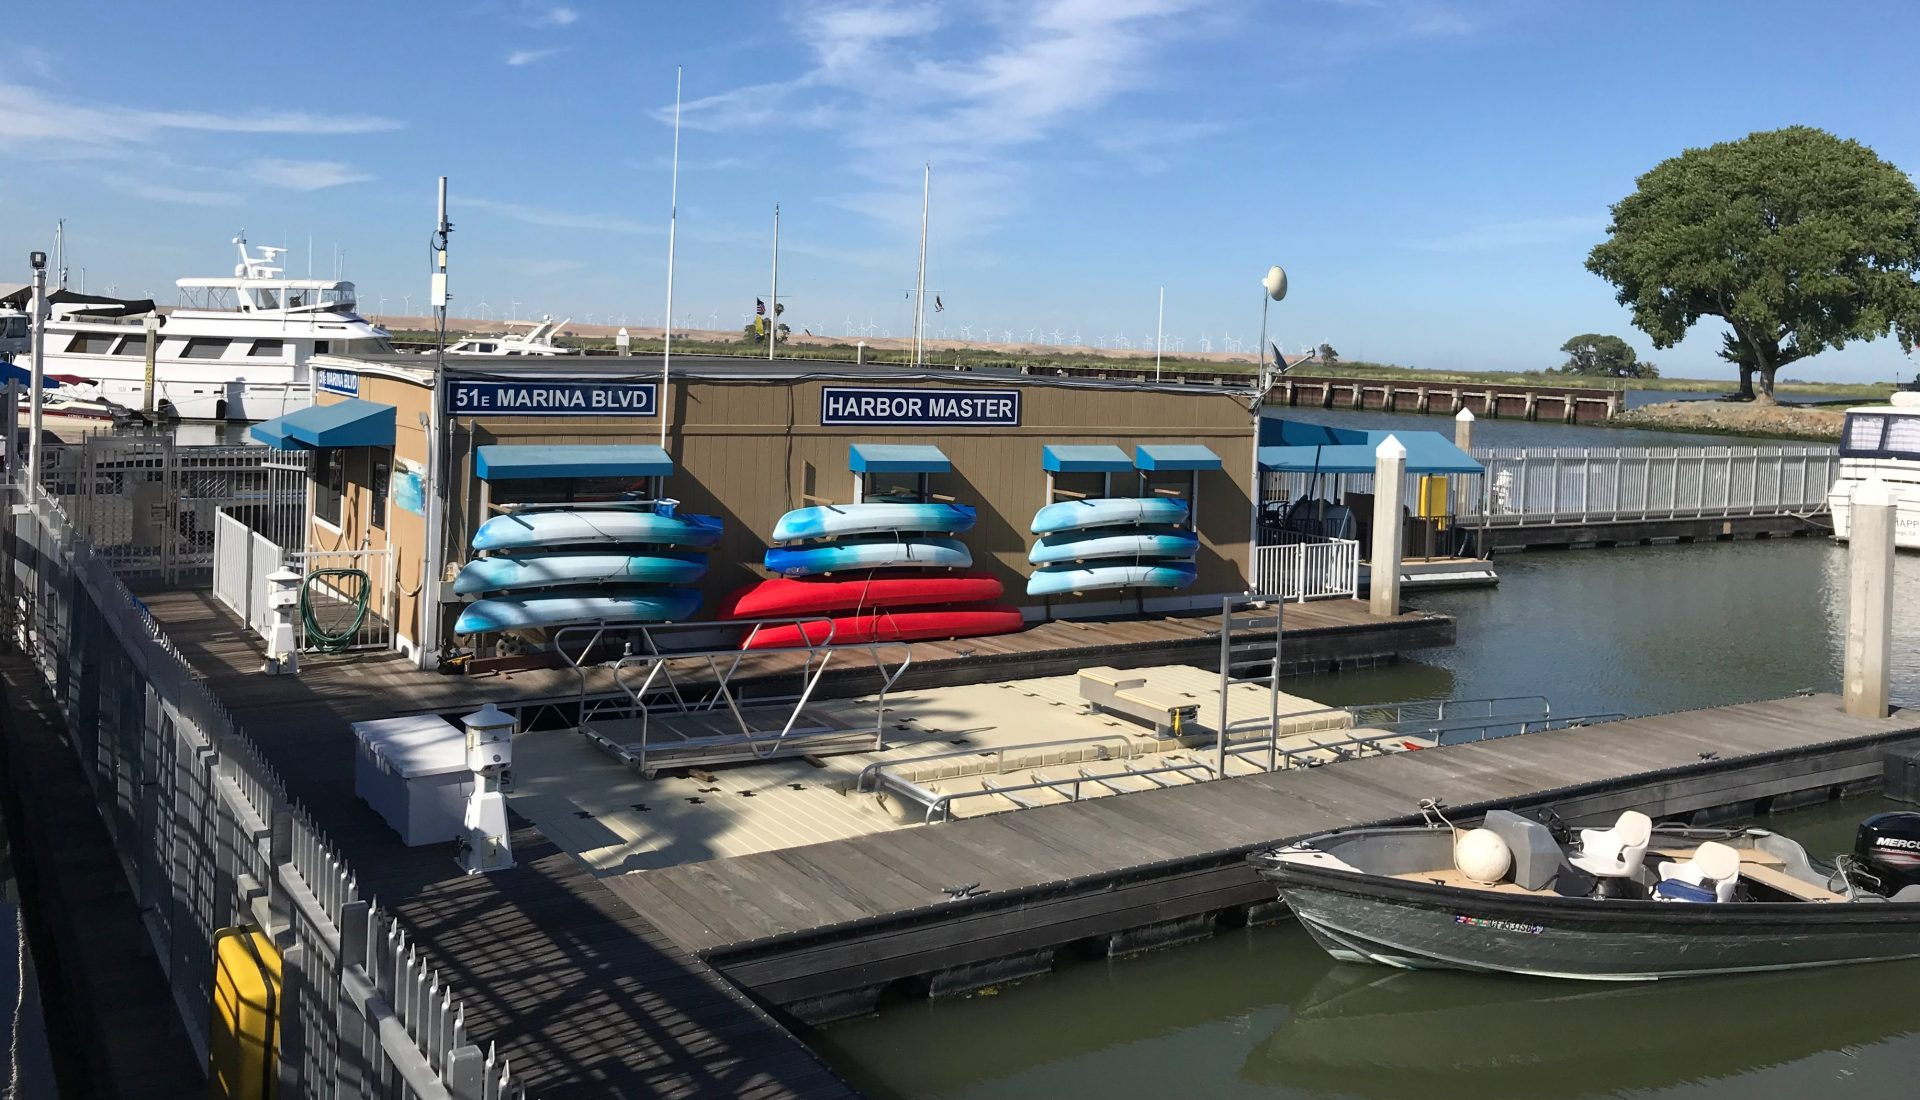 harbor master building with kayaks in racks